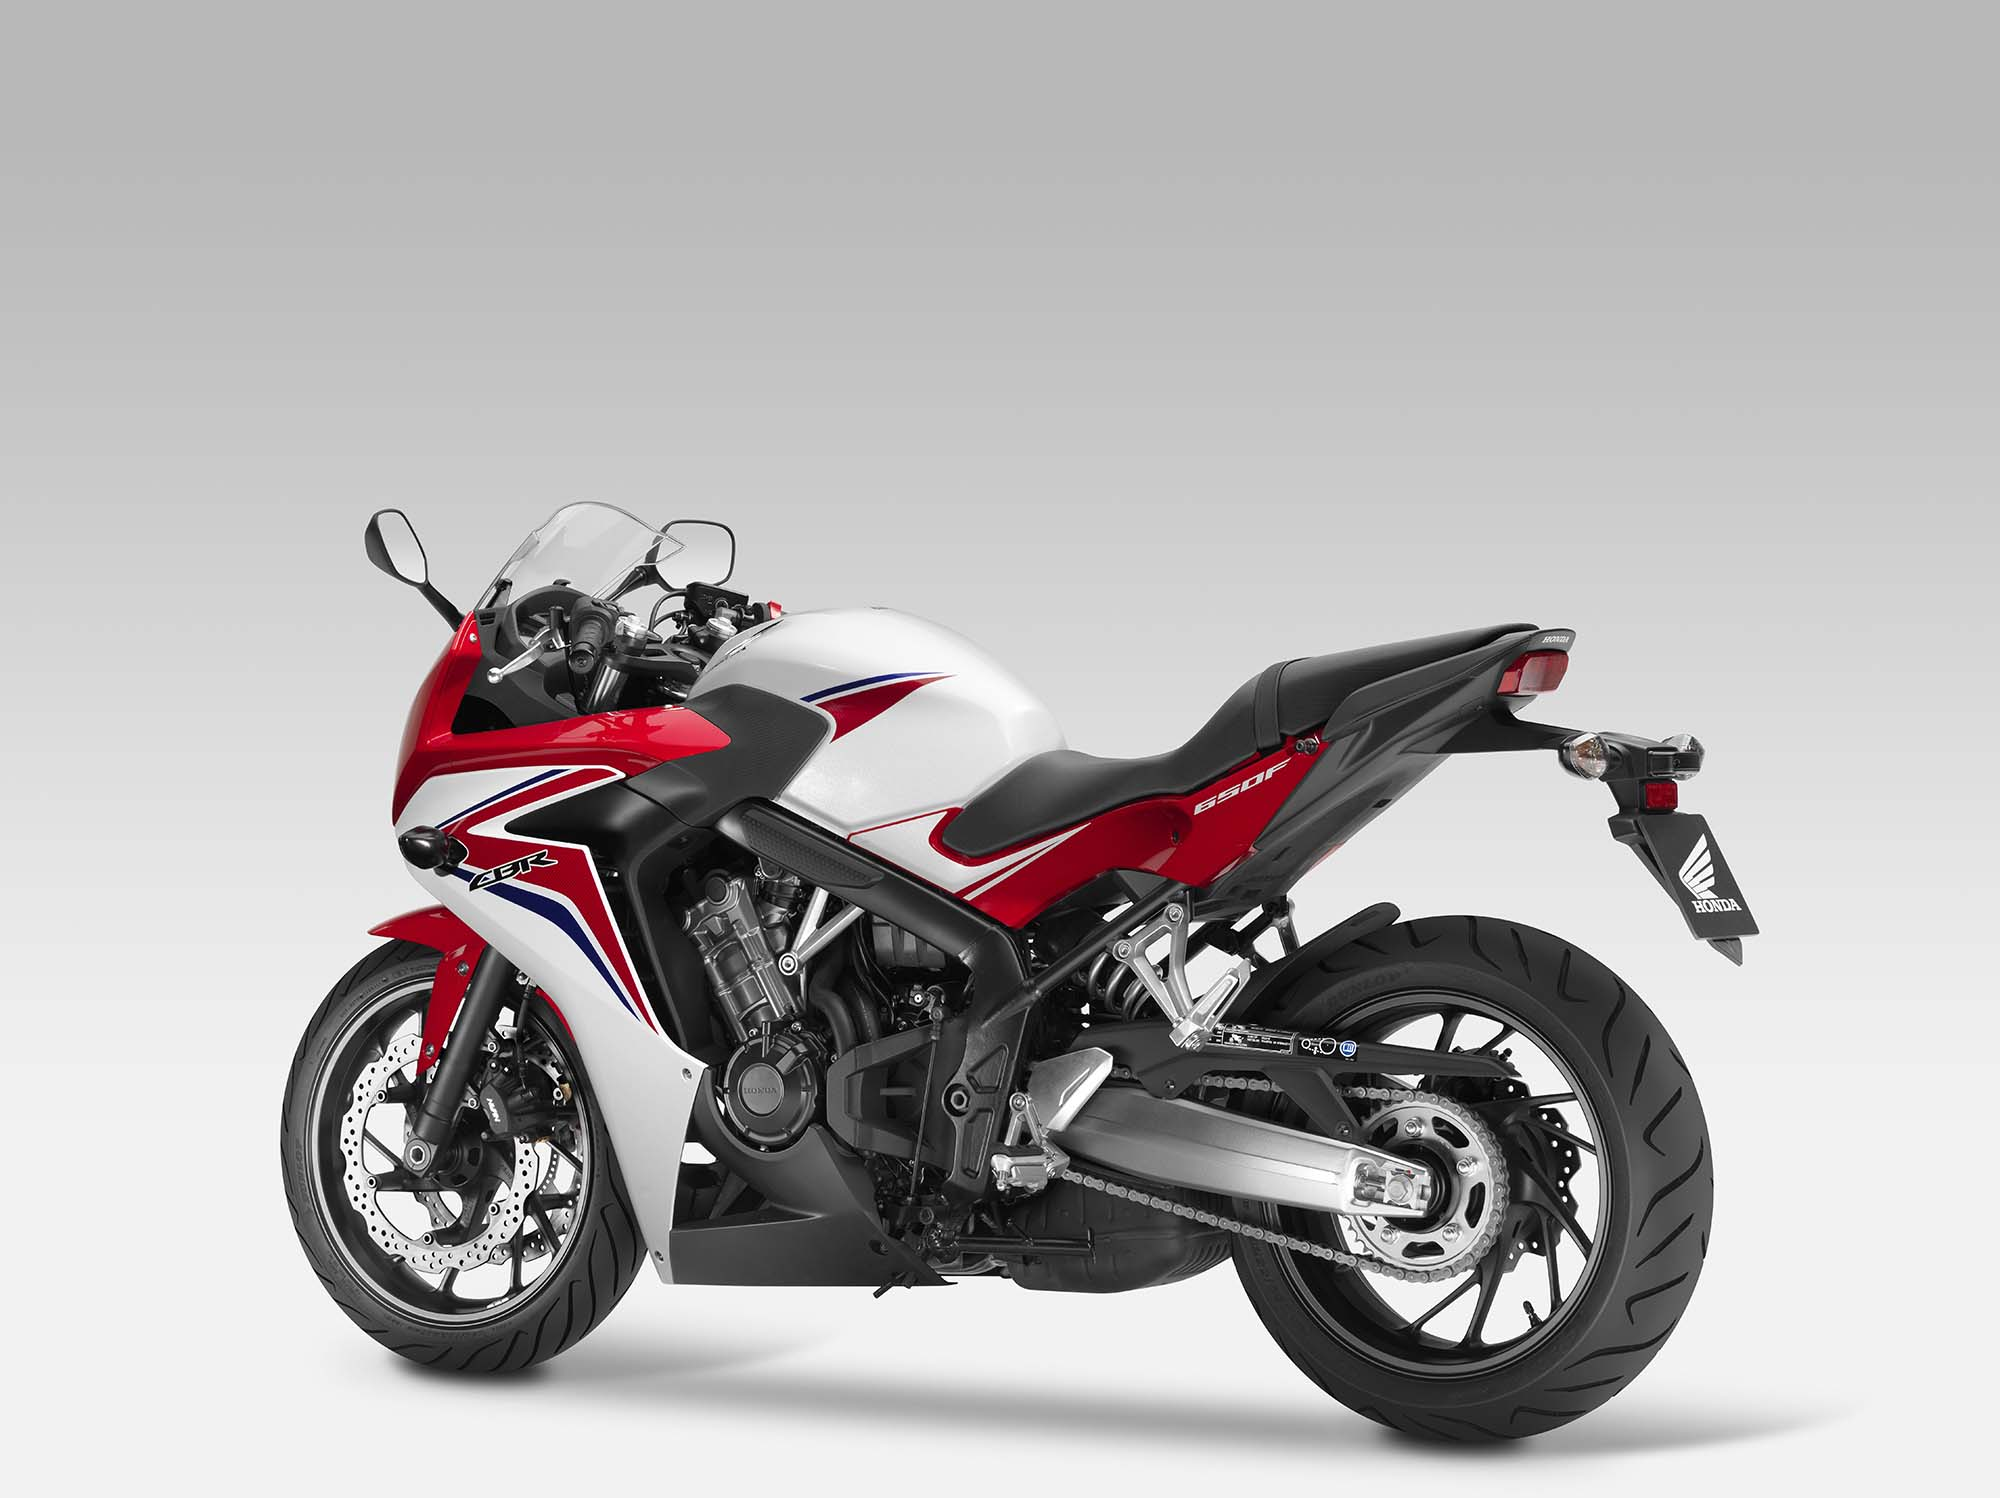 2014 honda cbr650f more of a good thing asphalt rubber. Black Bedroom Furniture Sets. Home Design Ideas